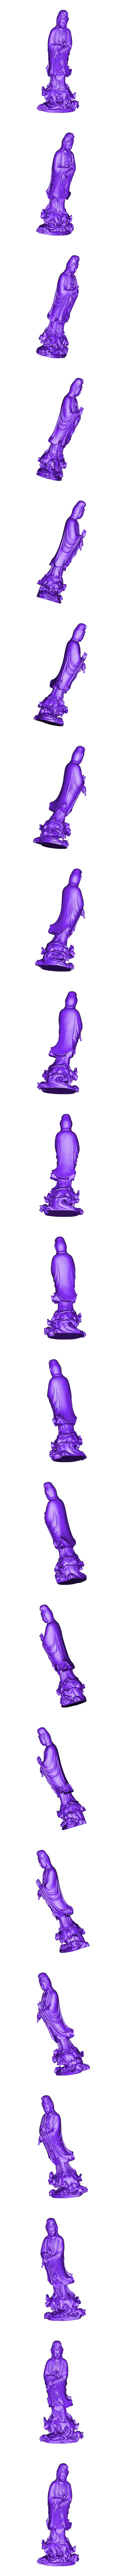 016guanyin.obj Download free OBJ file Guanyin bodhisattva Kwan-yin sculpture for cnc or 3d printer #016 • 3D printer design, stlfilesfree